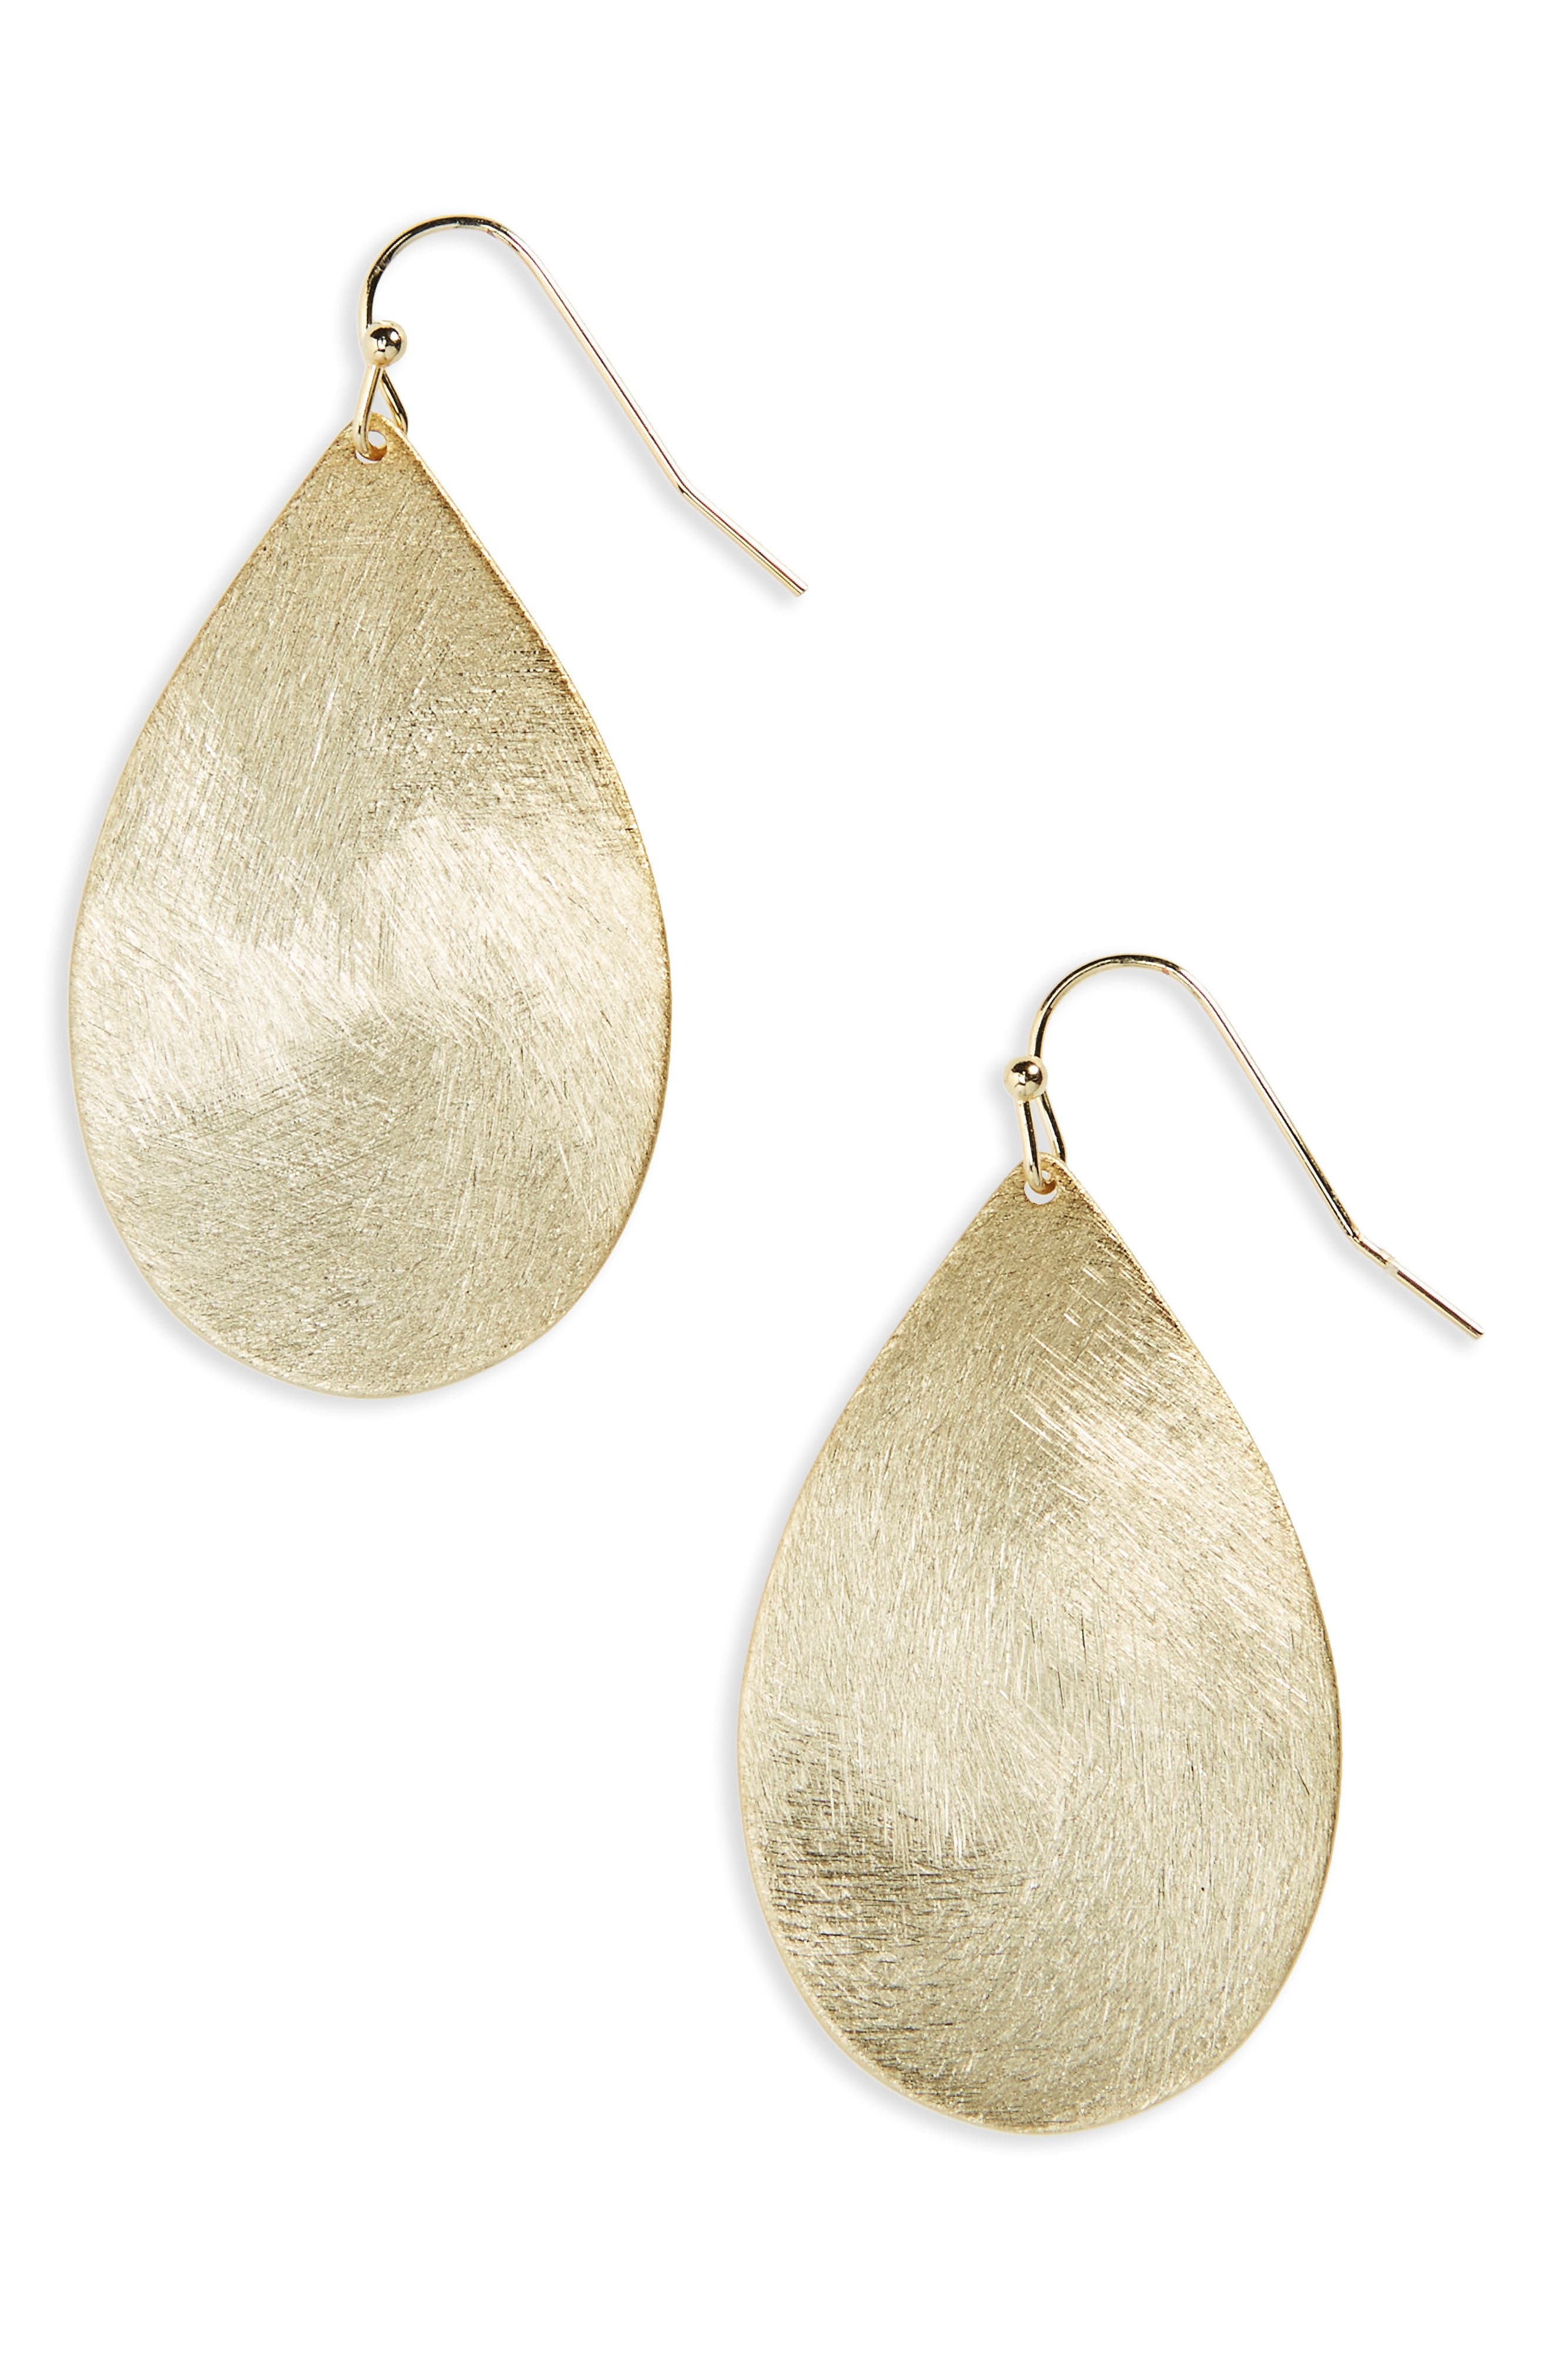 Large Brushed Teardrop Earrings,                             Main thumbnail 1, color,                             Gold